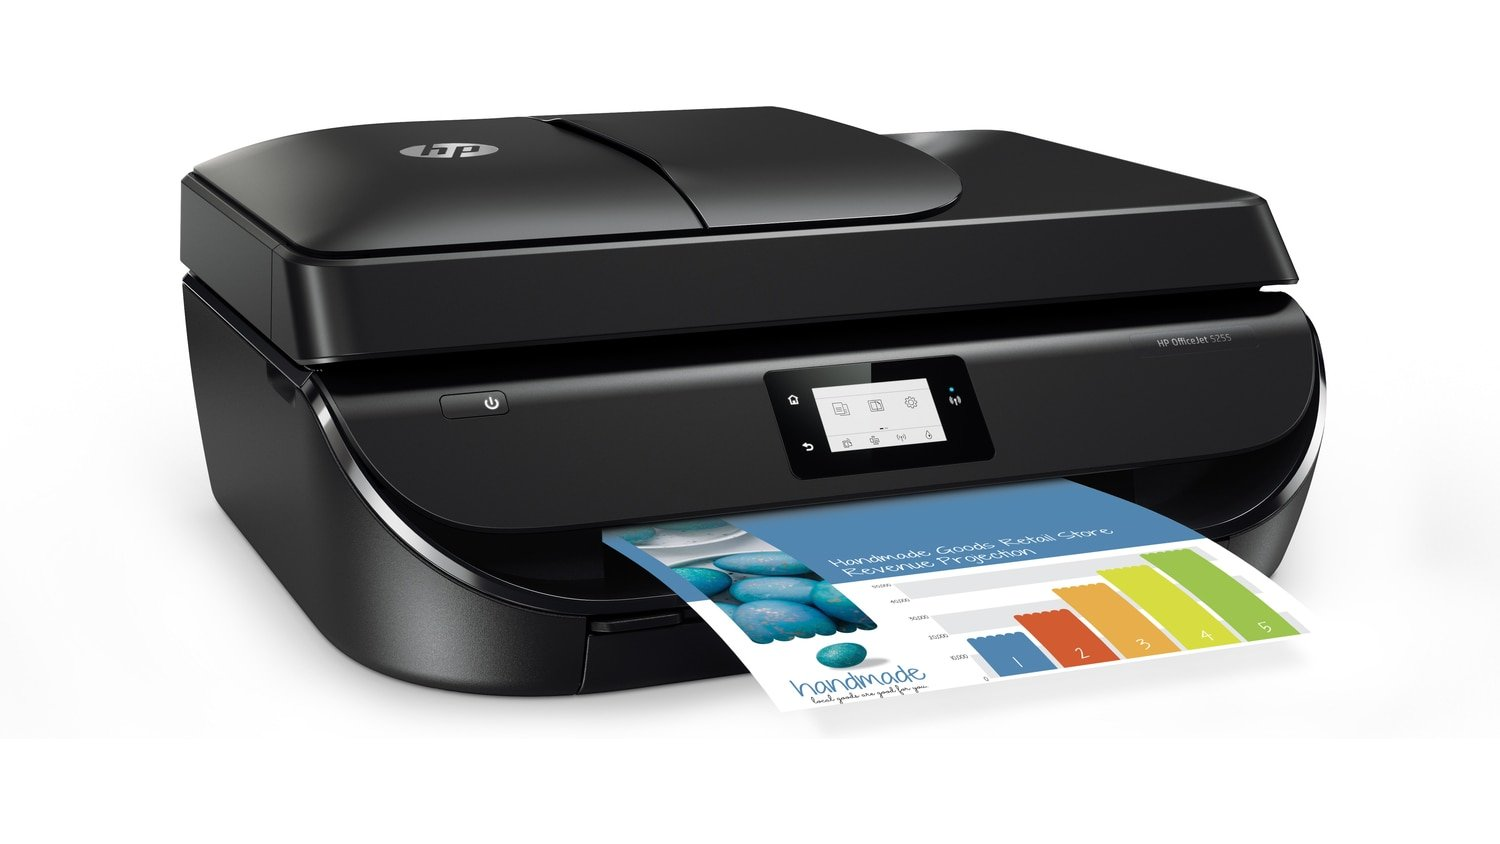 Amazon.com: Impresora todo en uno HP OfficeJet 5255 con ...